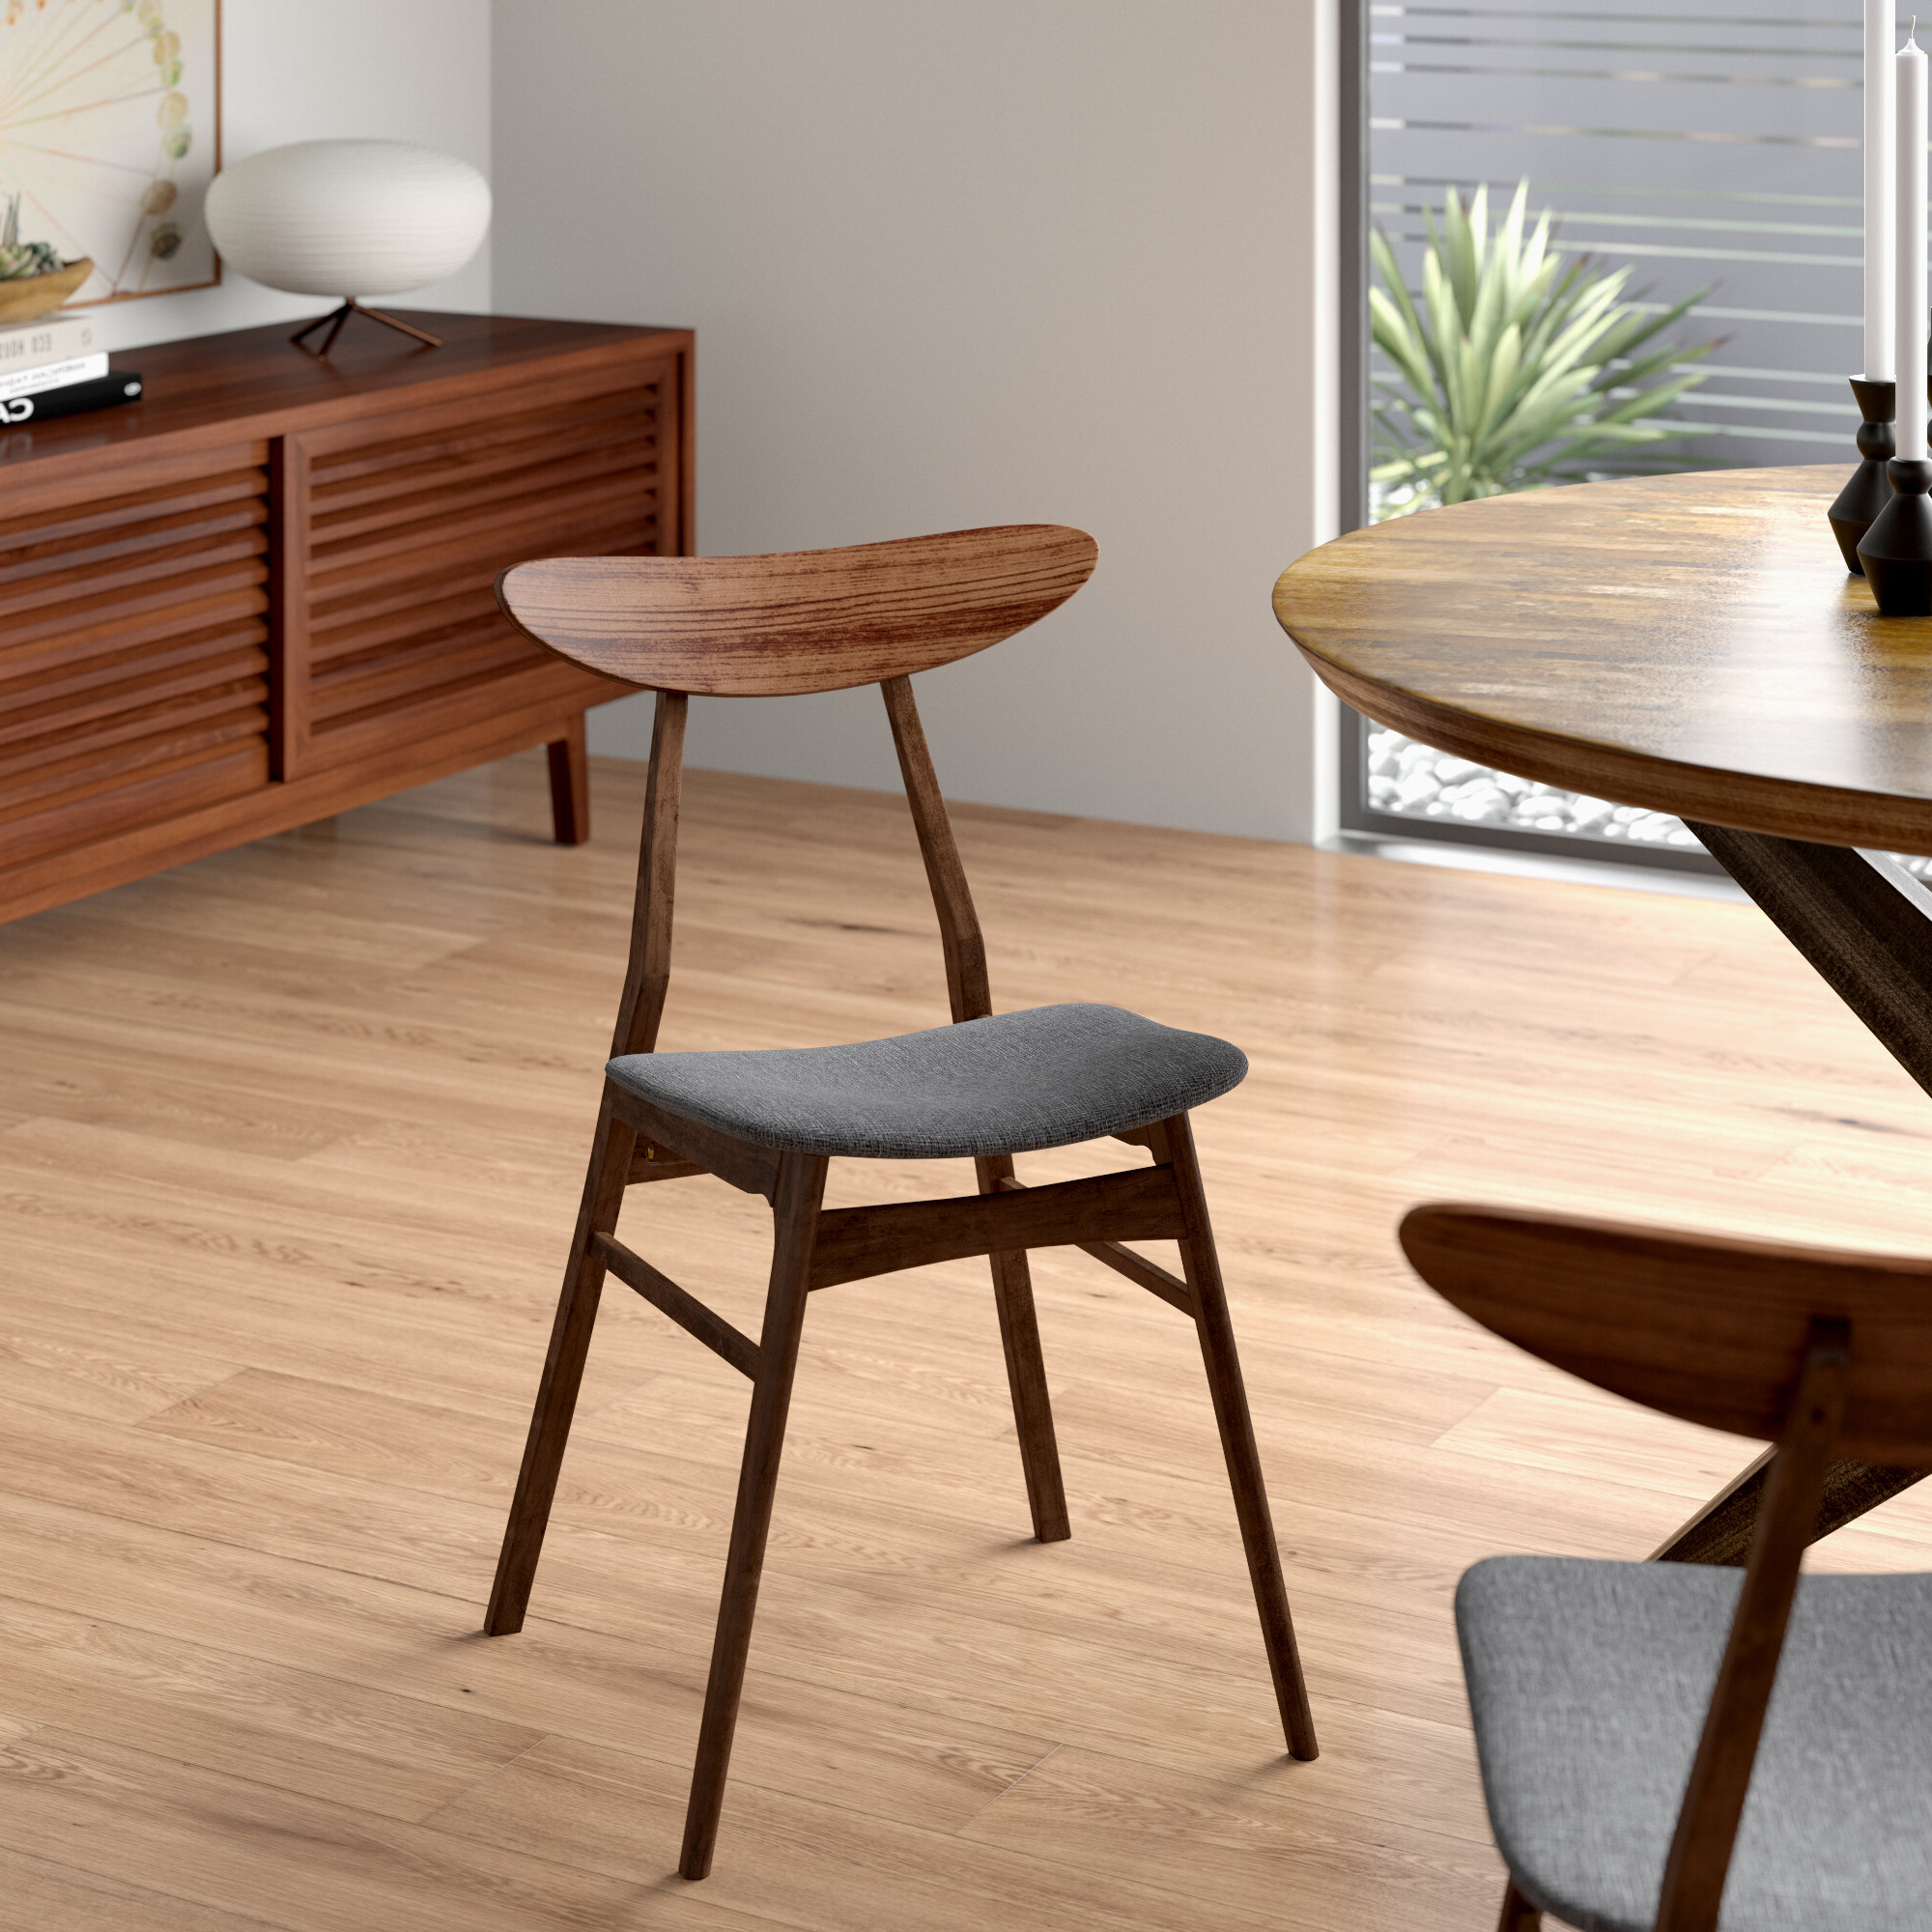 2019 Filton Barrel Chairs With Regard To Filton Solid Wood Dining Chair (View 4 of 20)